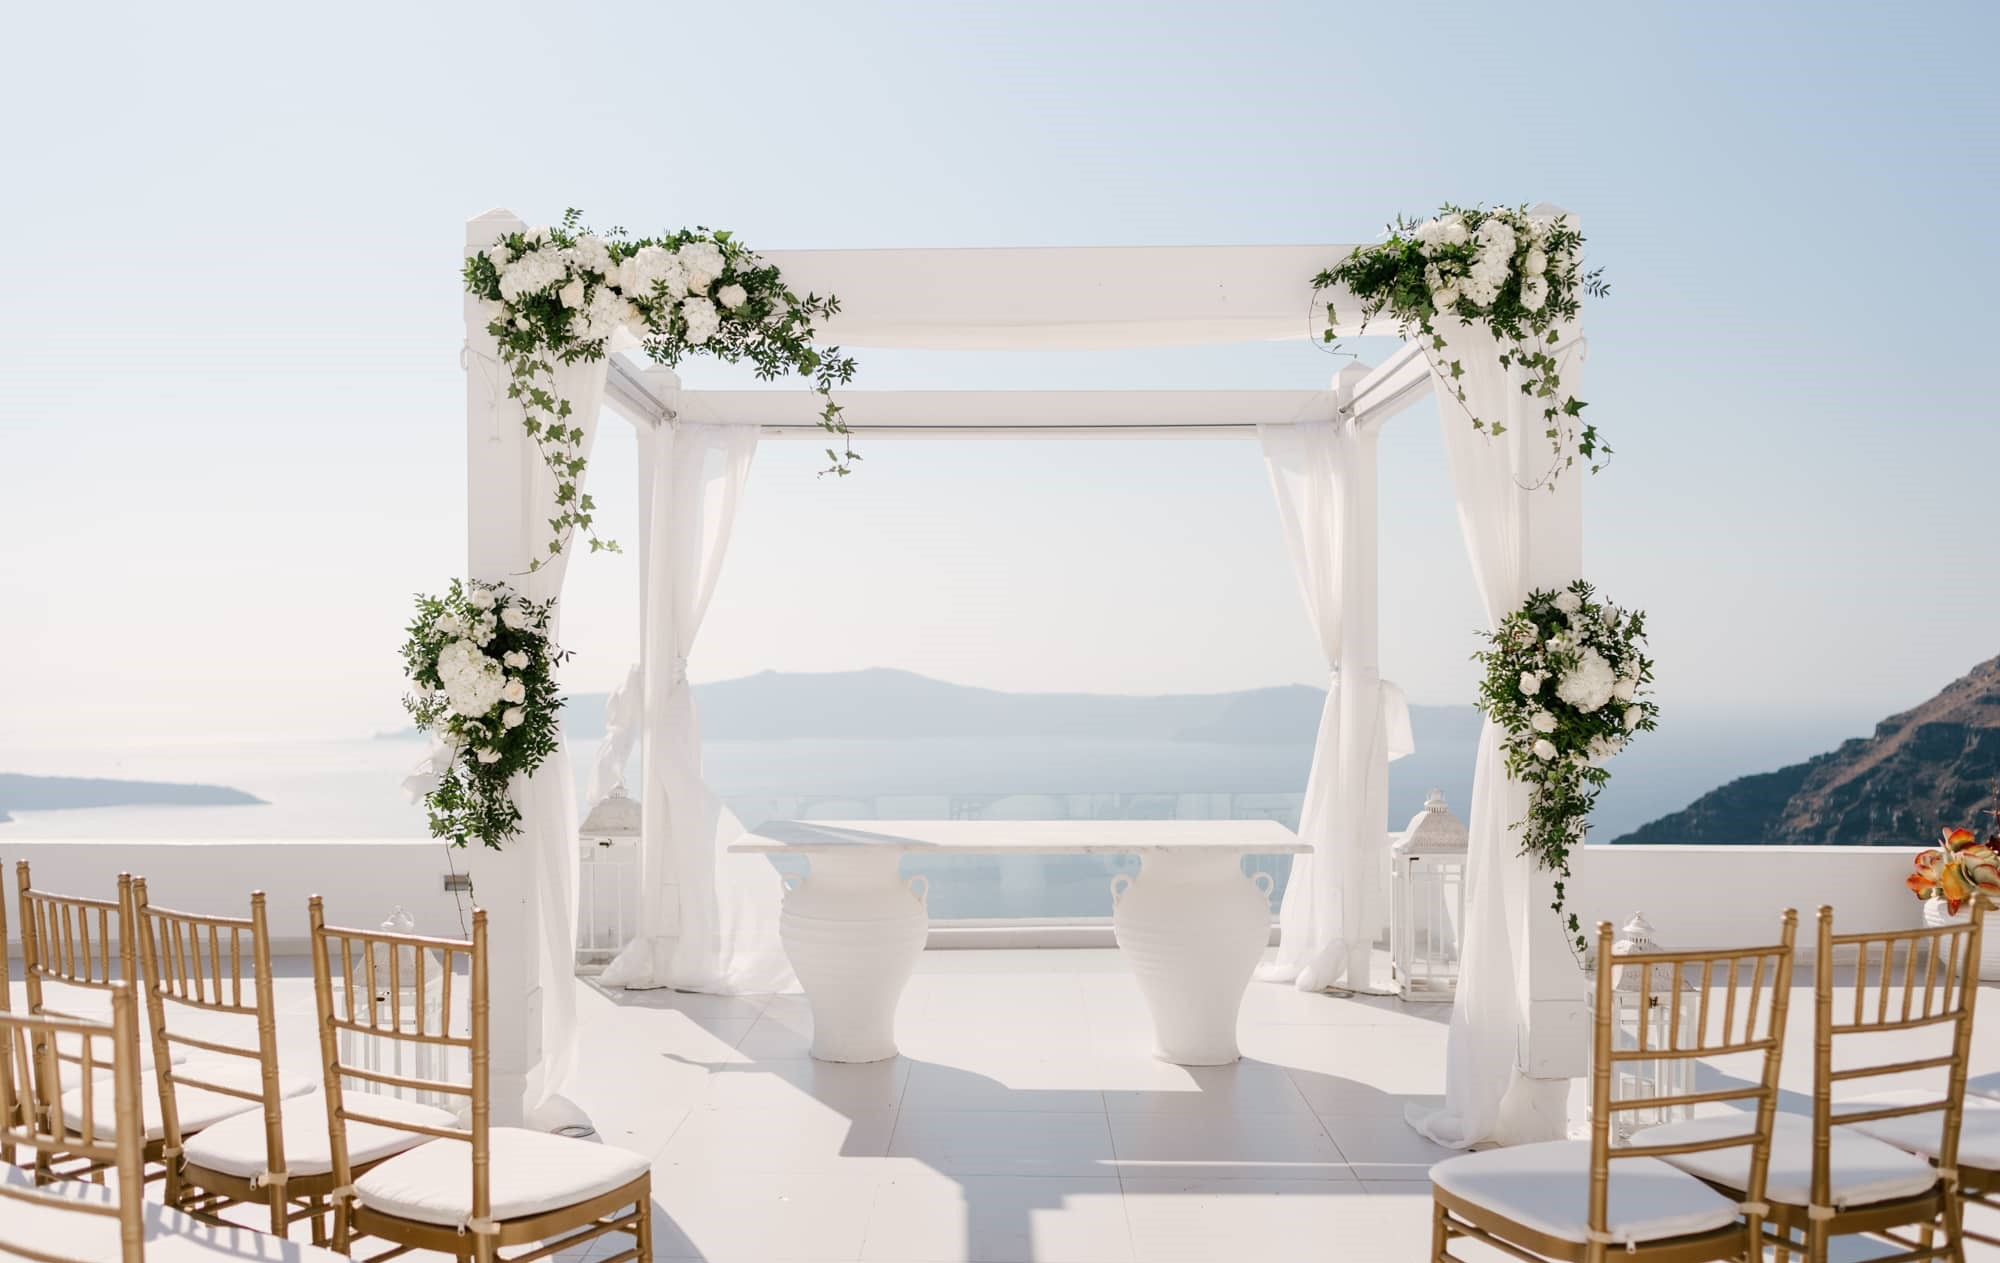 dana villas santorini wedding location 2